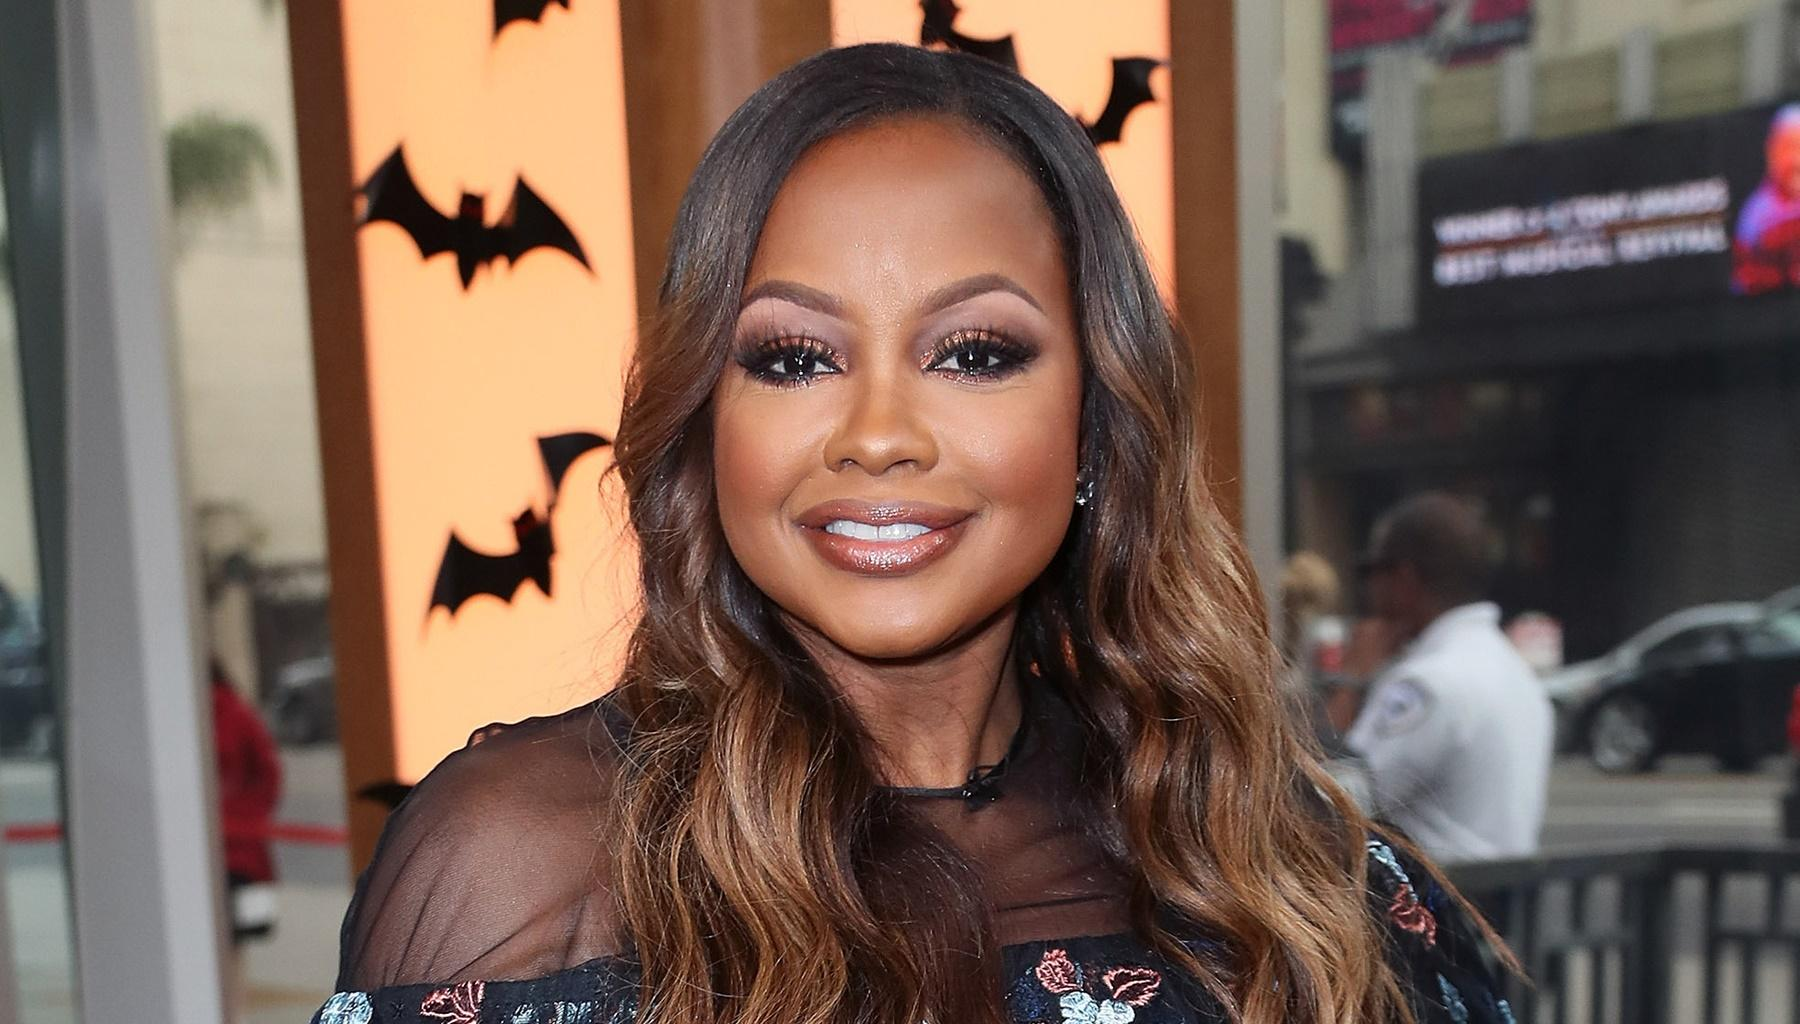 Phaedra Parks Shares Her Guidelines For 2020: 'Get In Line Or Fall Back'